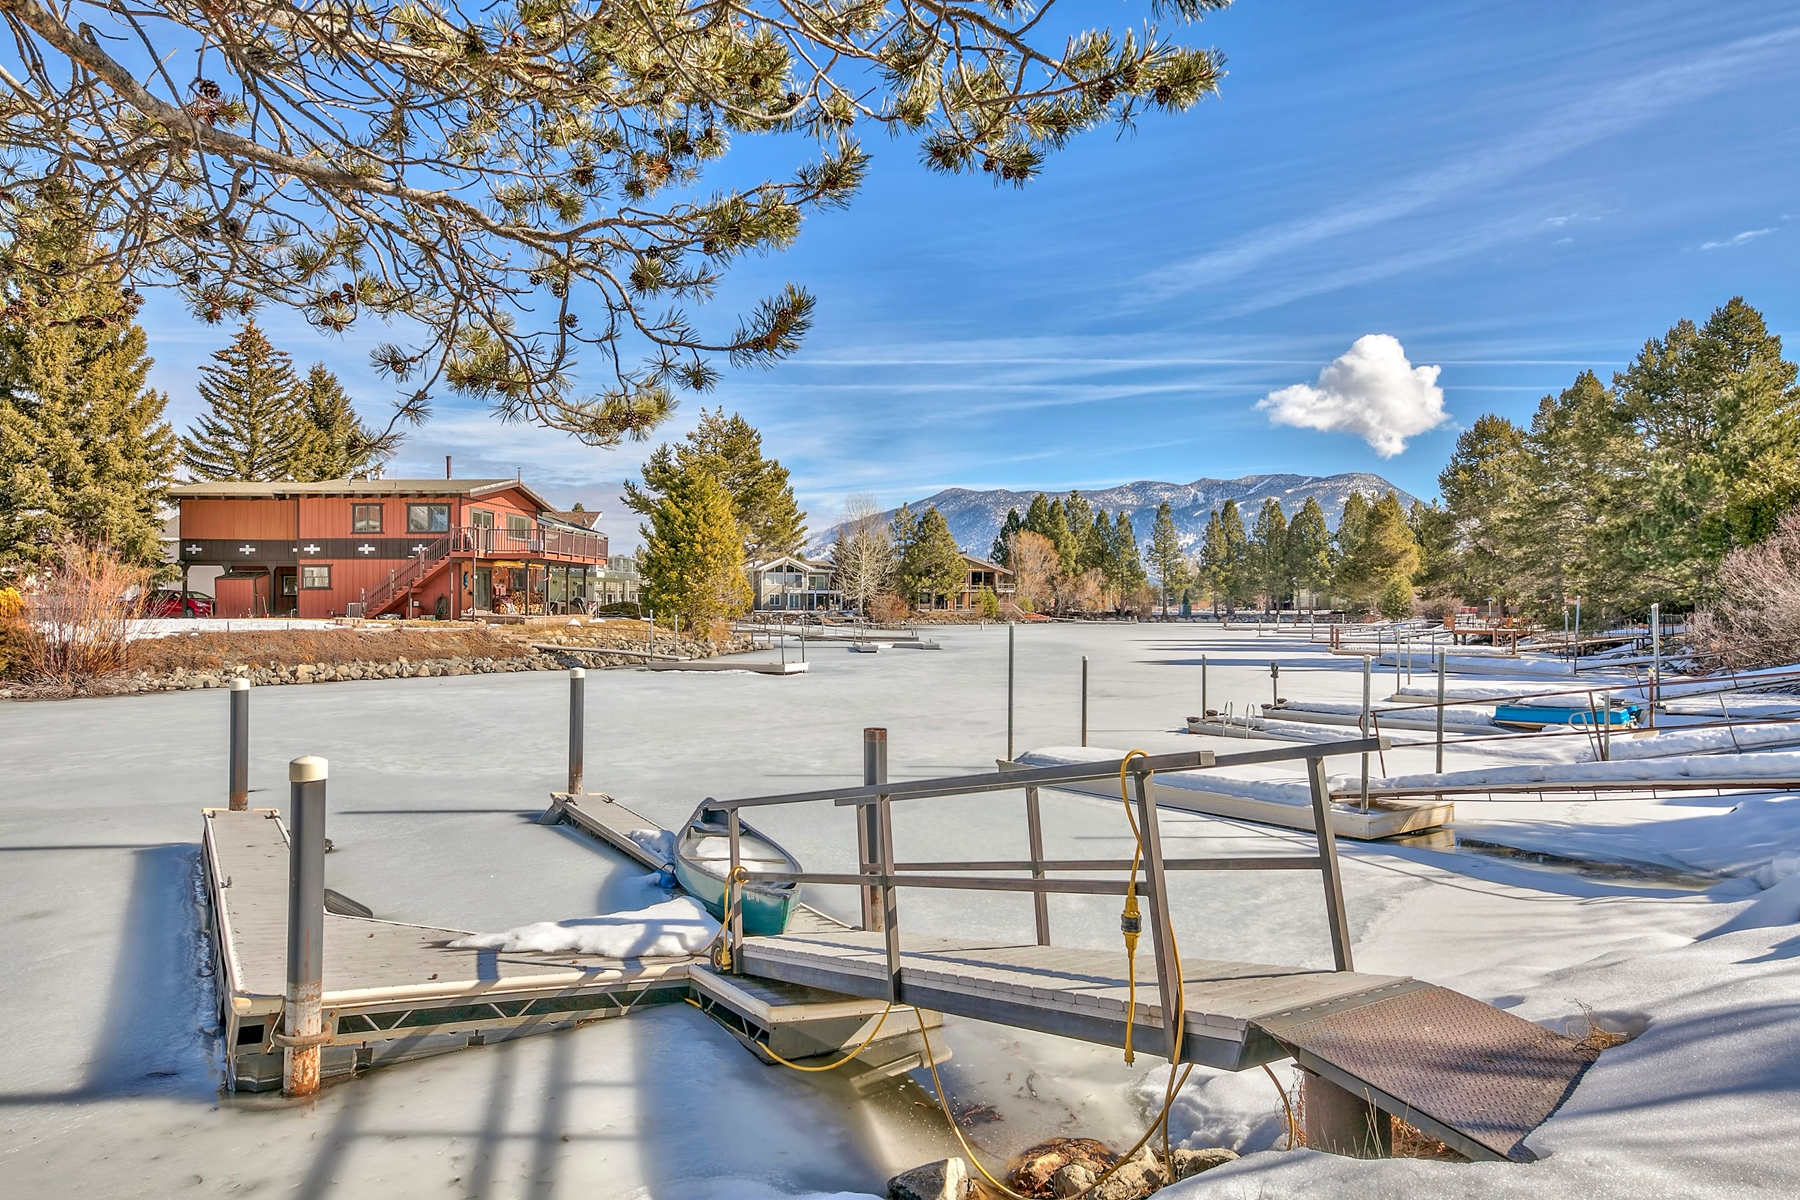 Additional photo for property listing at 1853 Venice Drive, South Lake Tahoe, CA 96150 1853 Venice Drive South Lake Tahoe, California 96150 Estados Unidos